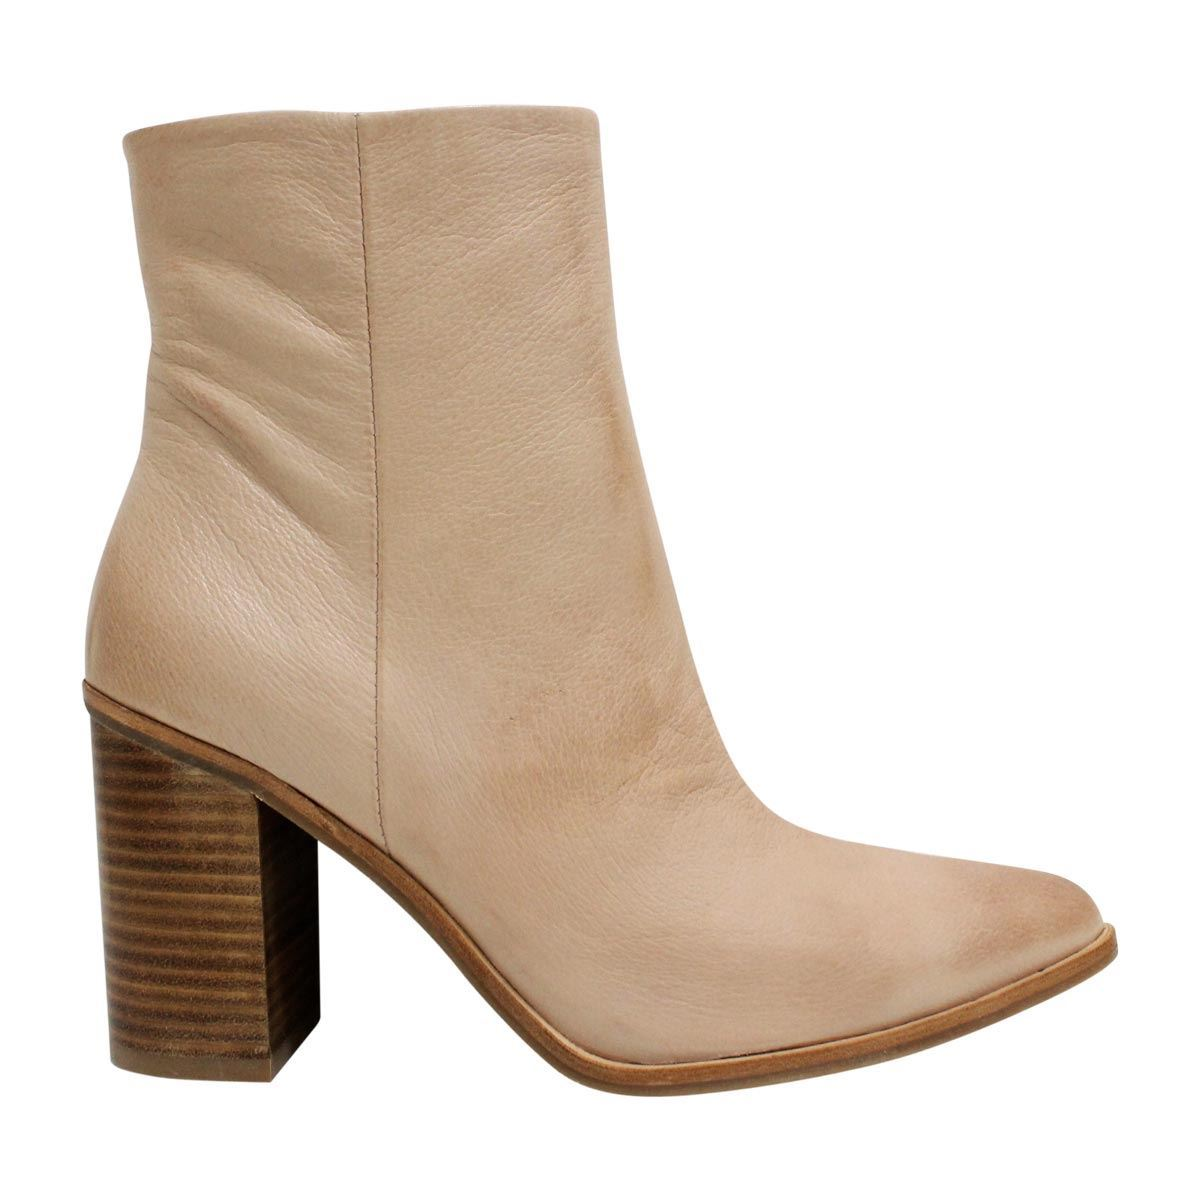 Mollini Beeps - Dark Nude Leather